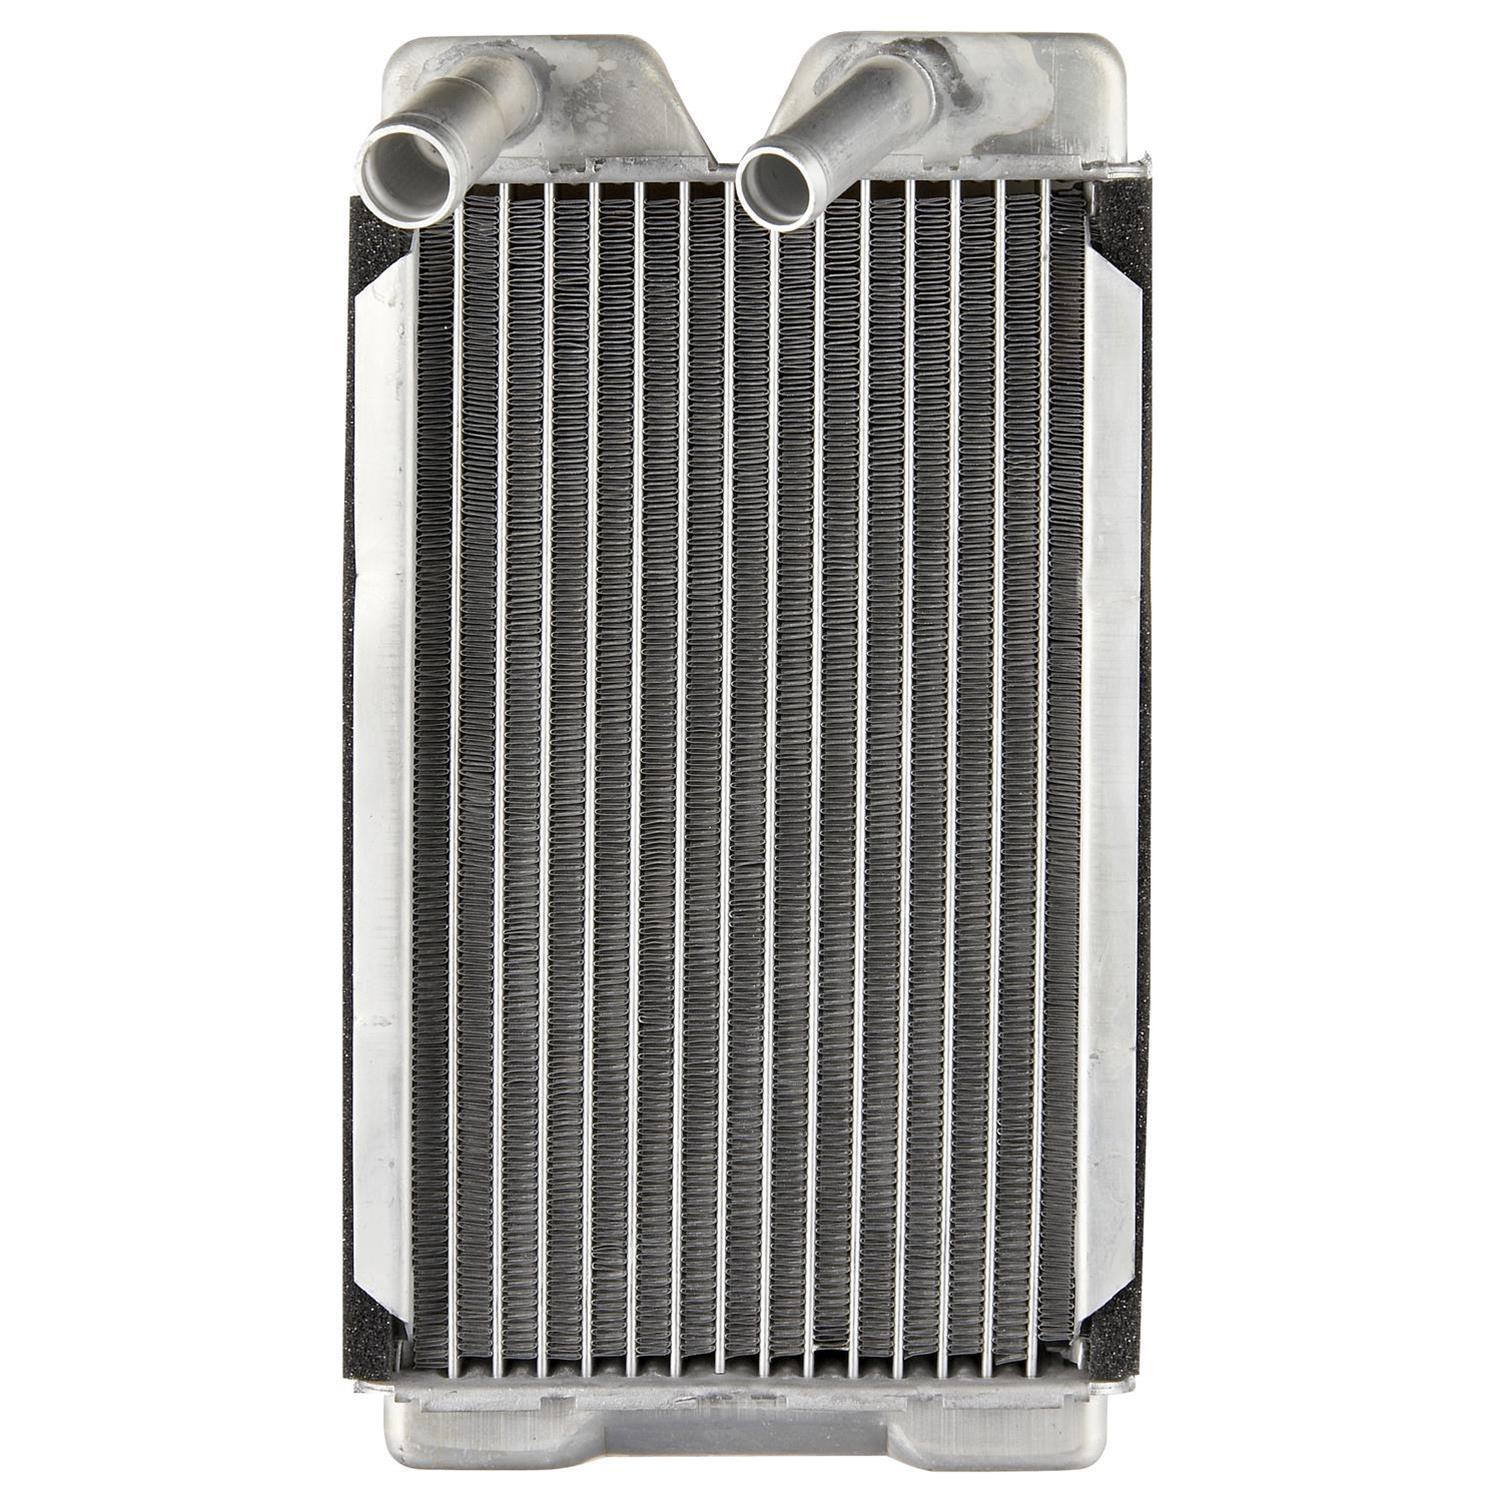 Spectra Premium Heater Cores 94536 Free Shipping On Orders Over 1955 Ford F100 Core 99 At Summit Racing